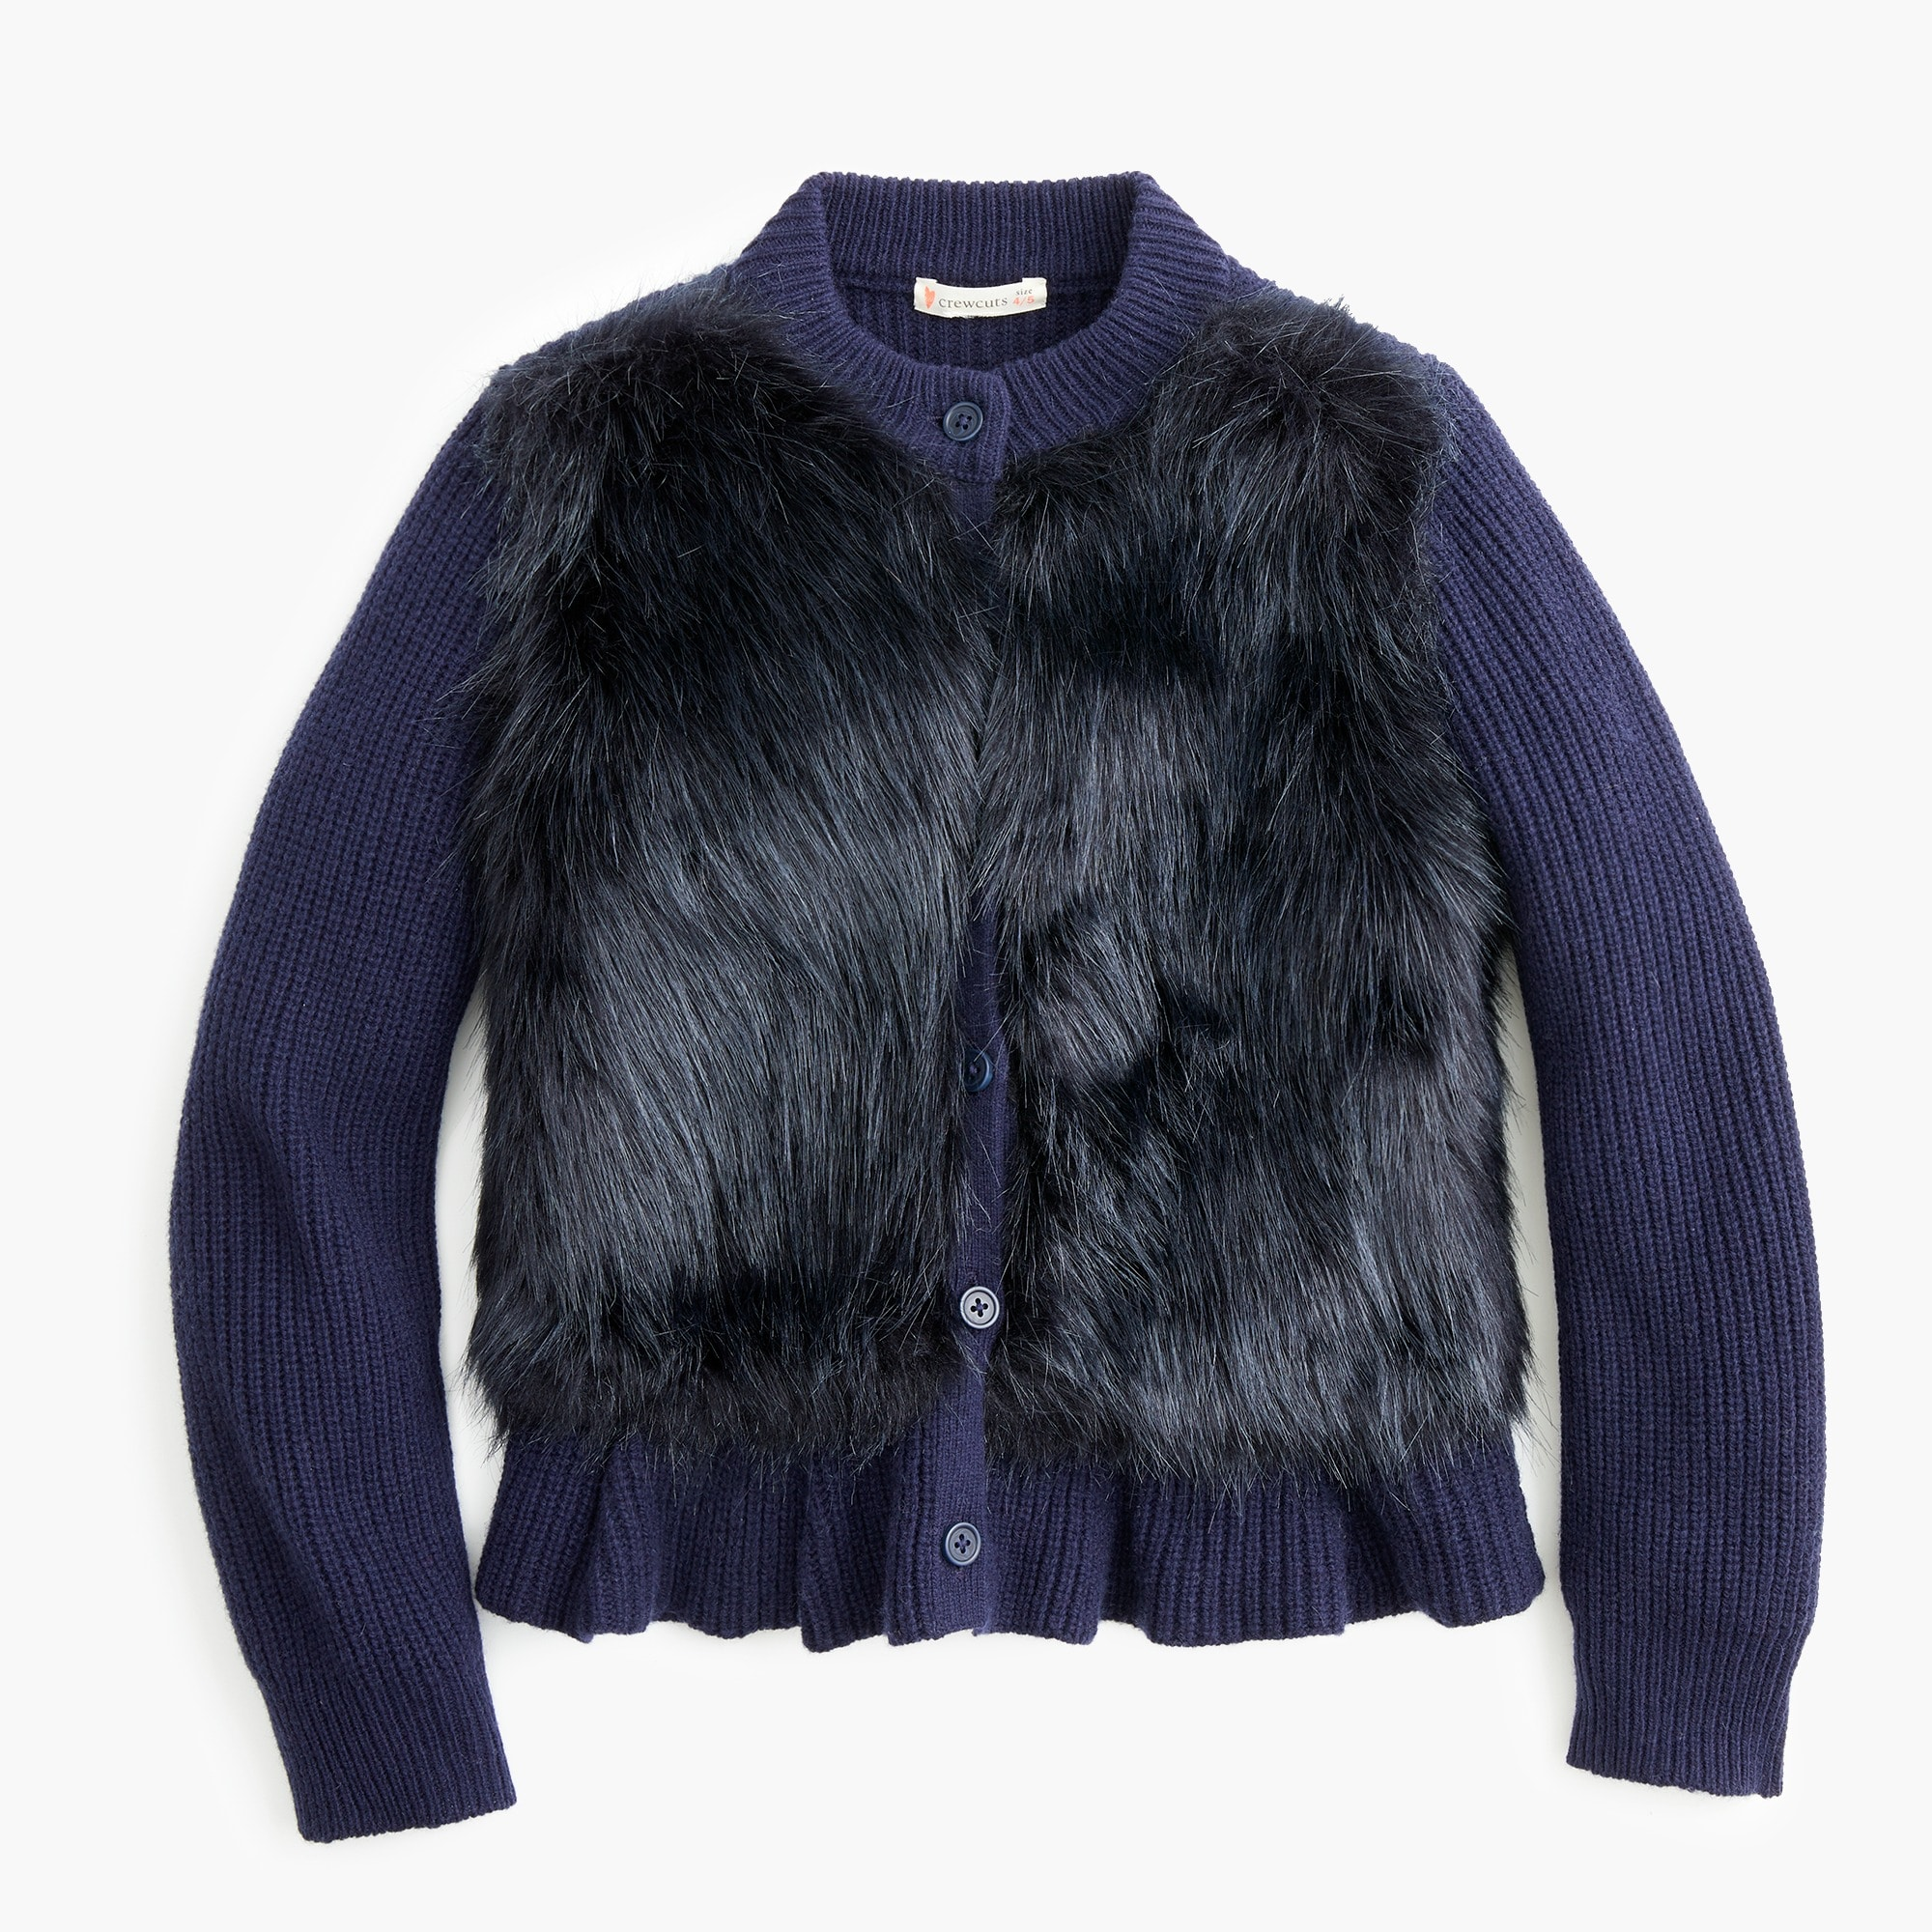 girls Girls' fur-front peplum cardigan sweater